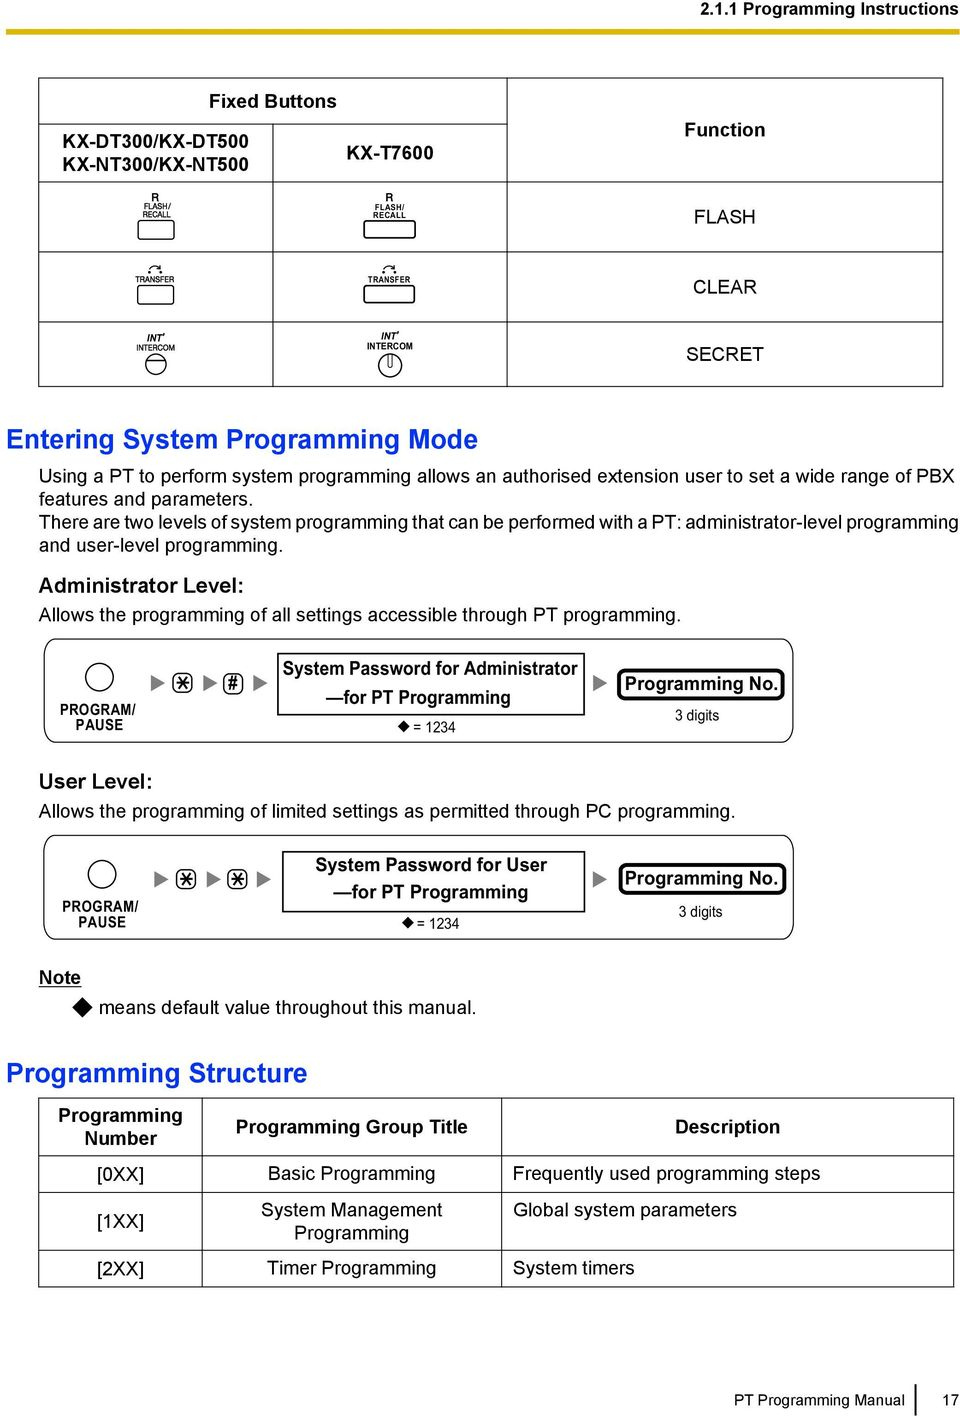 There are two levels of system programming that can be performed with a PT: administrator-level programming and user-level programming.